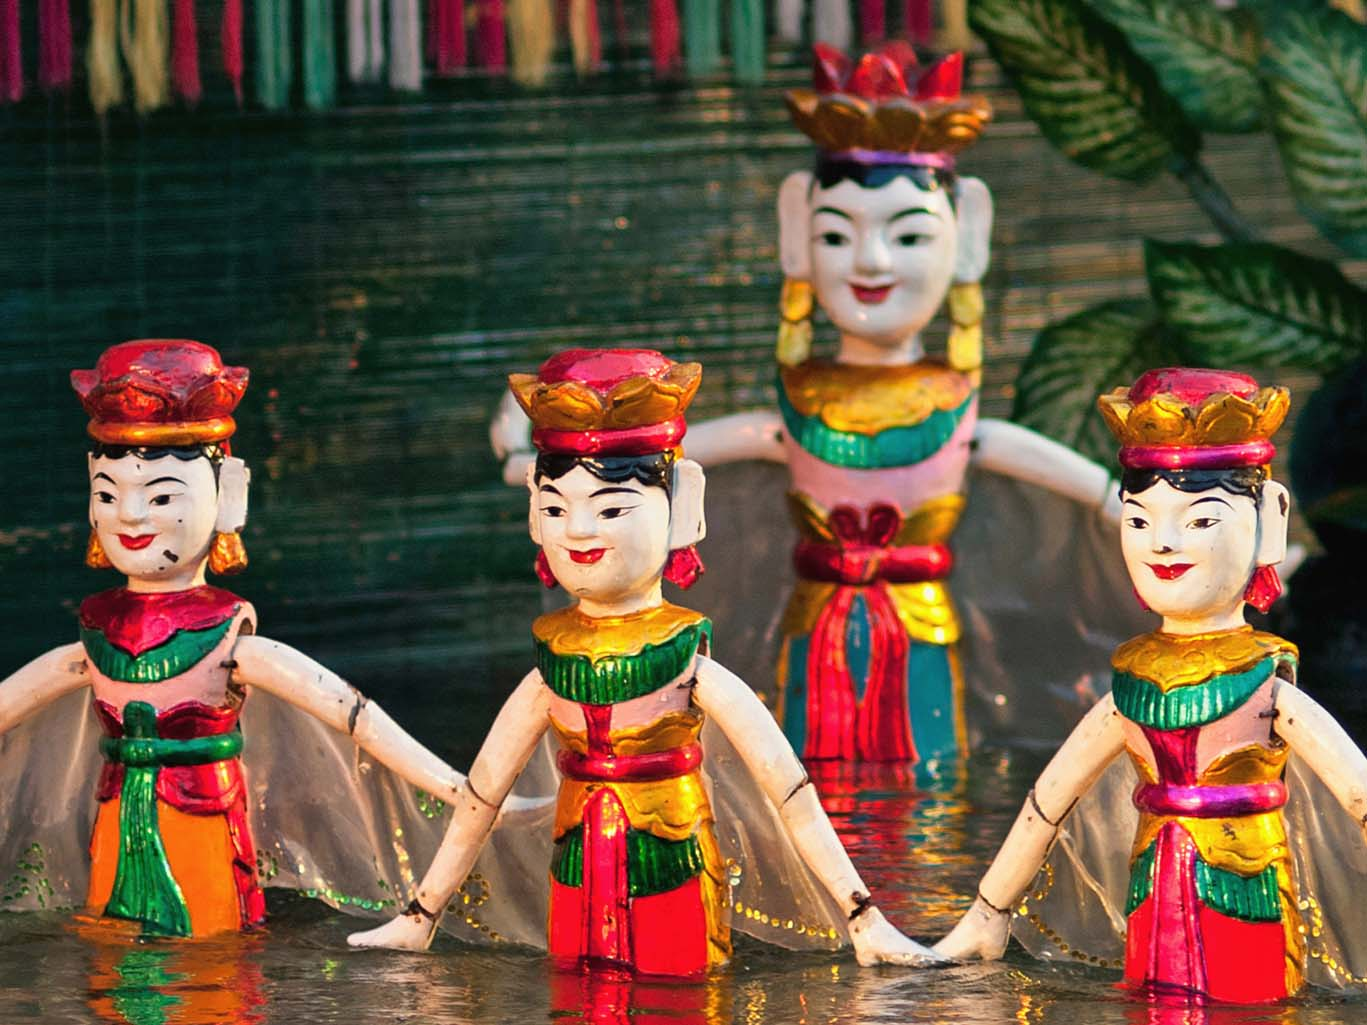 Water Puppetry: Behind the Scenes